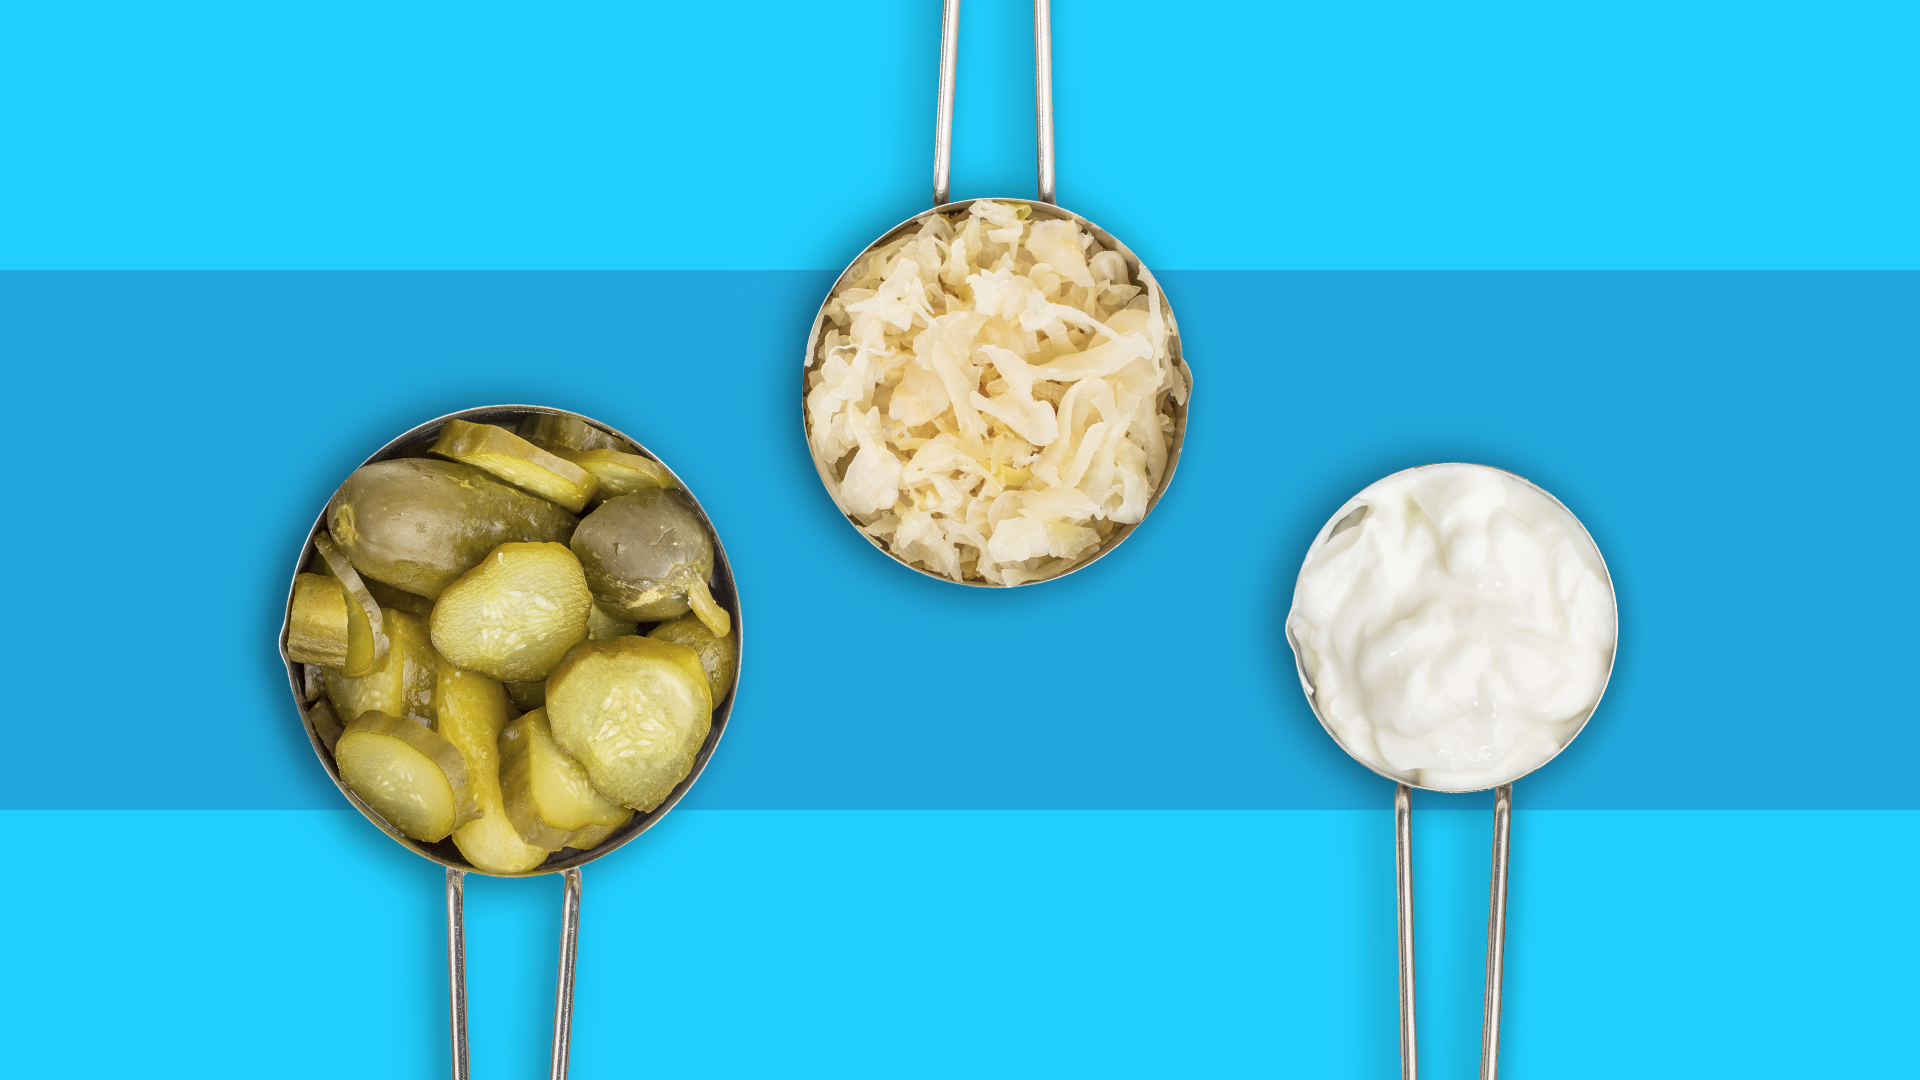 Probiotics 101: What are they? And which are the best?